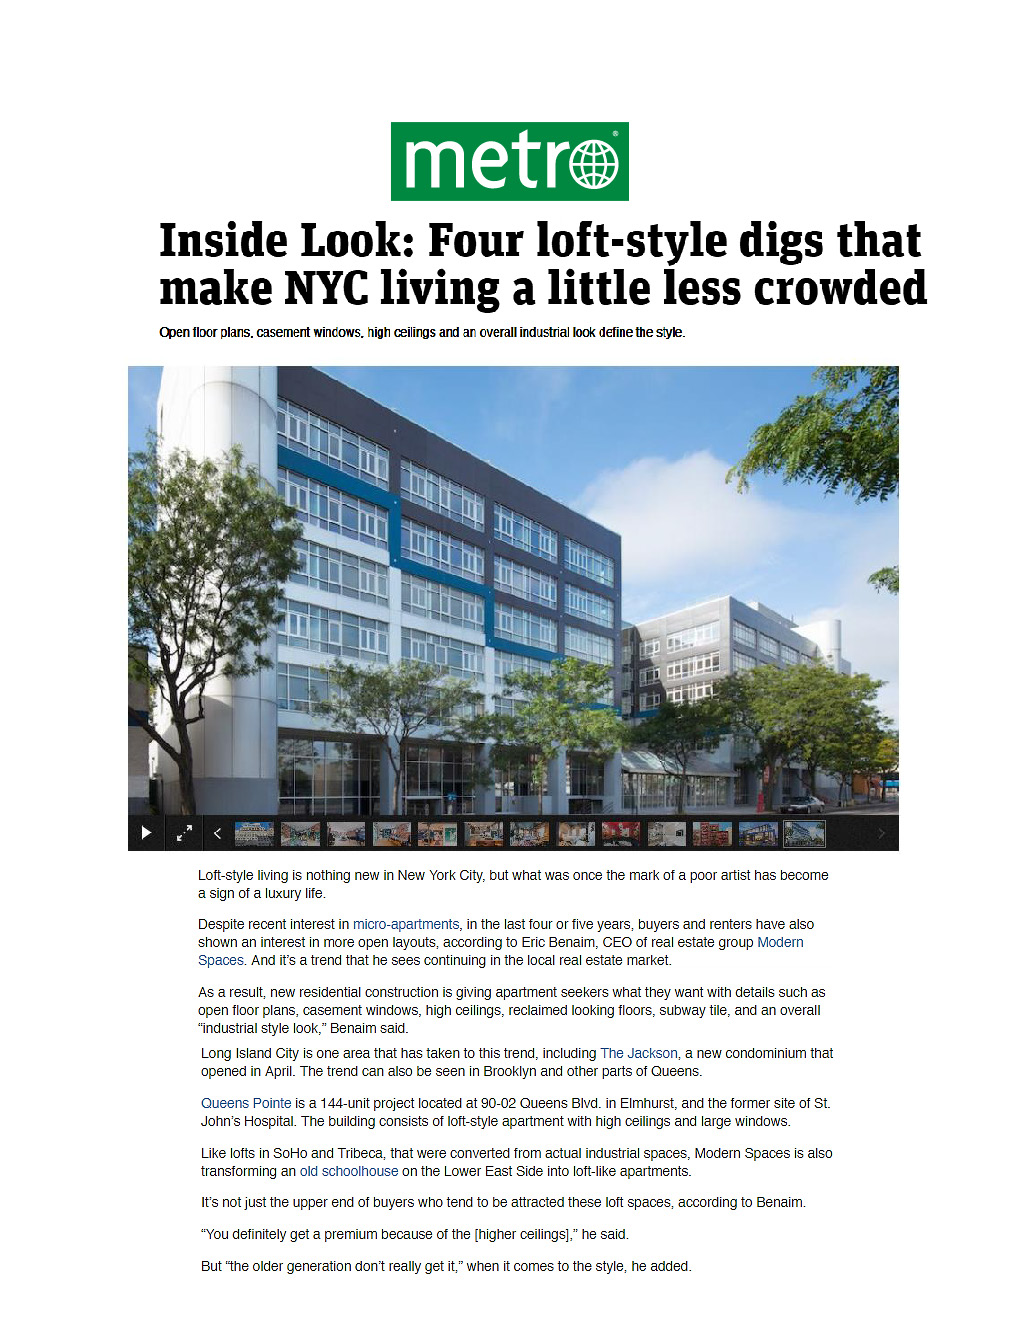 Metro - Inside Look- Four loft-style digs that make NYC living a little less crowded 7.13.16 (1)_Page_1